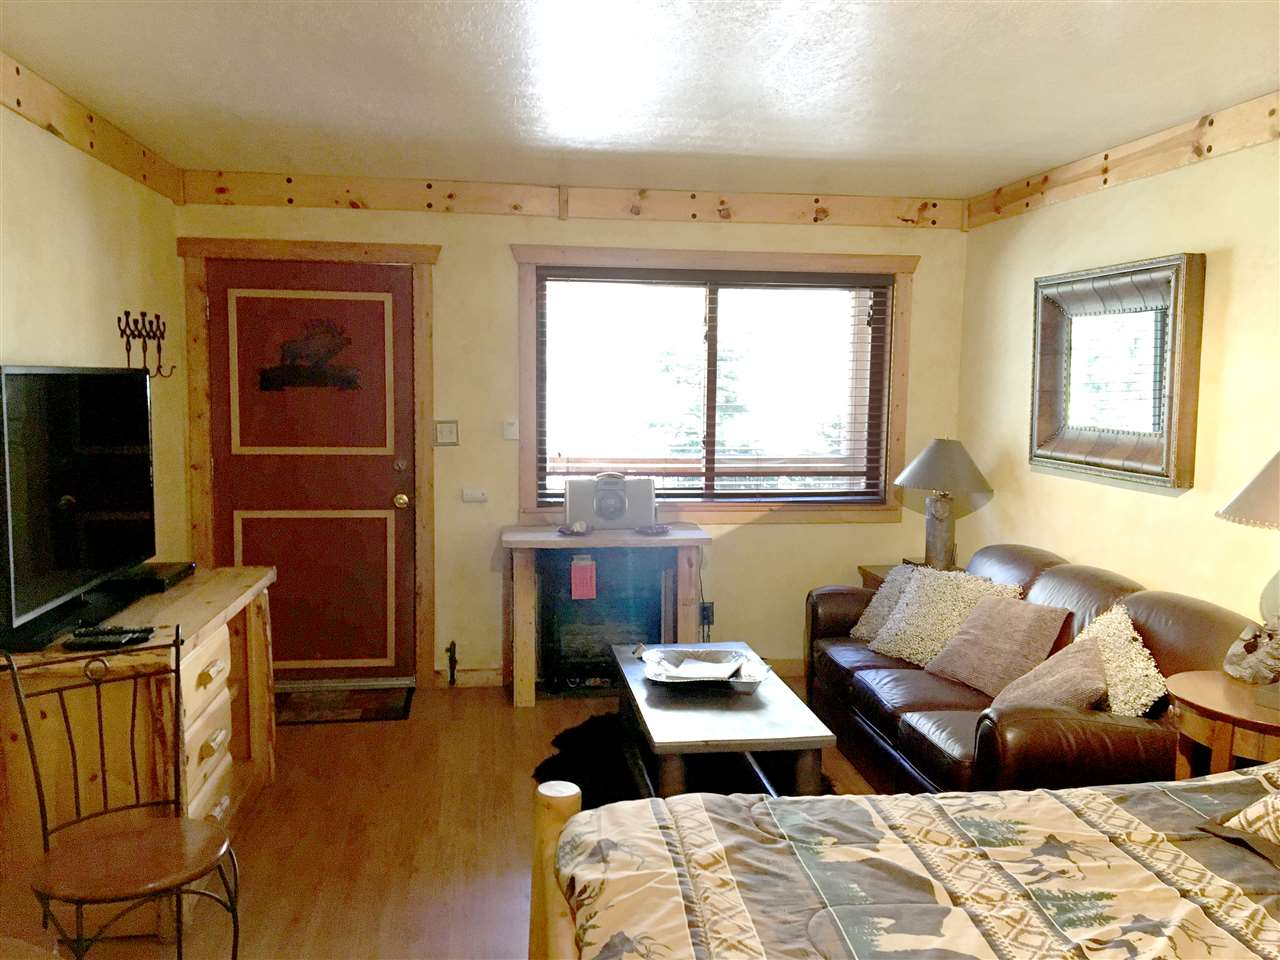 22 Firehouse, Taos Ski Valley, NM 87525